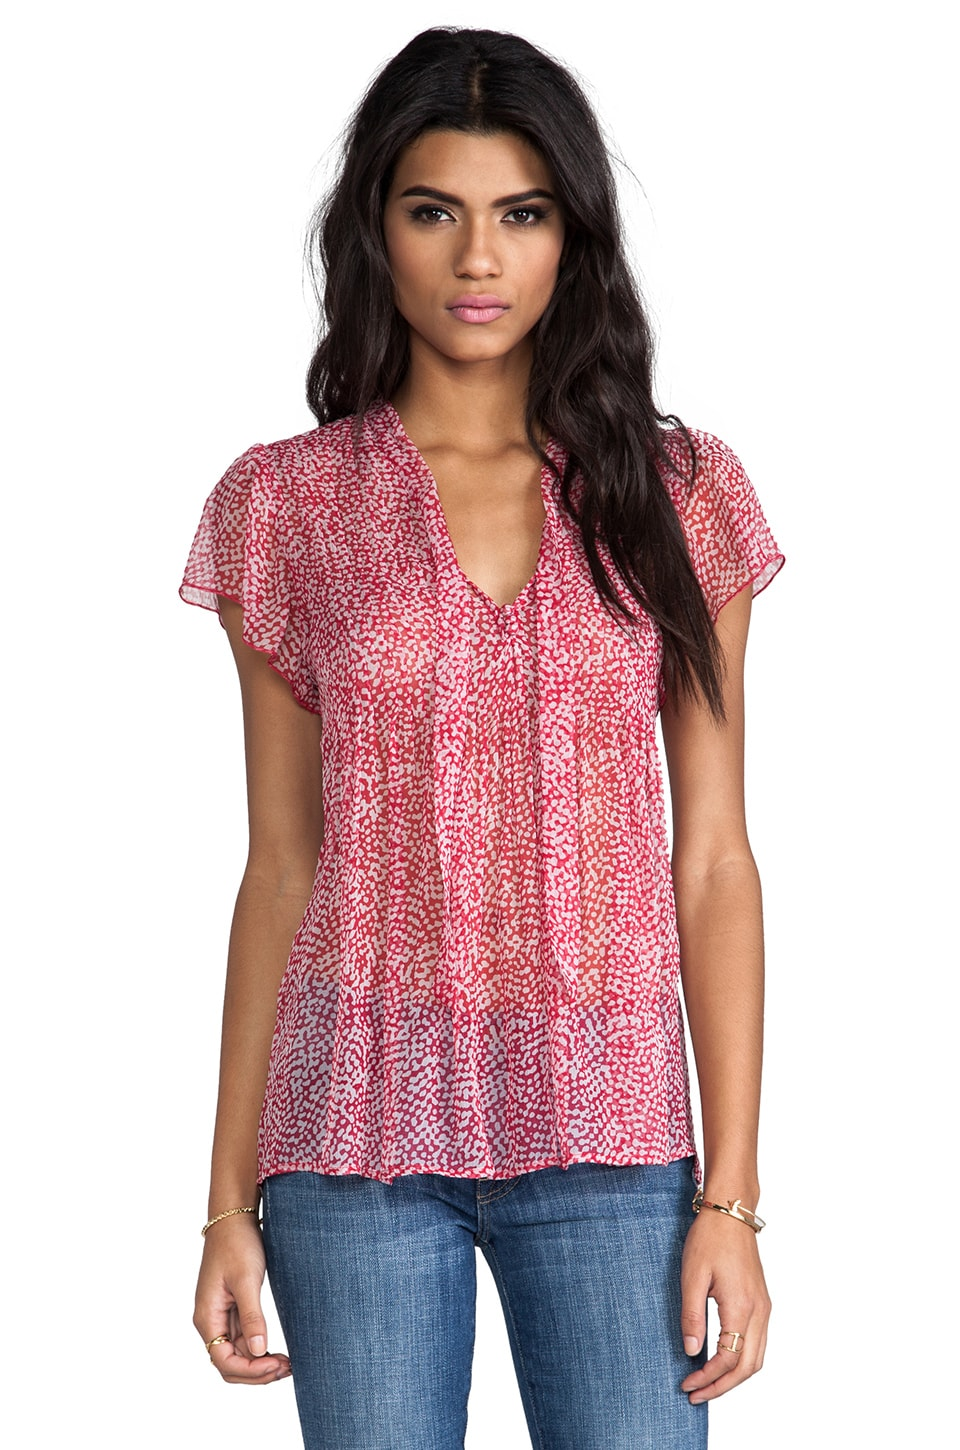 Joie Macie Tie Front Blouse in Candy Red